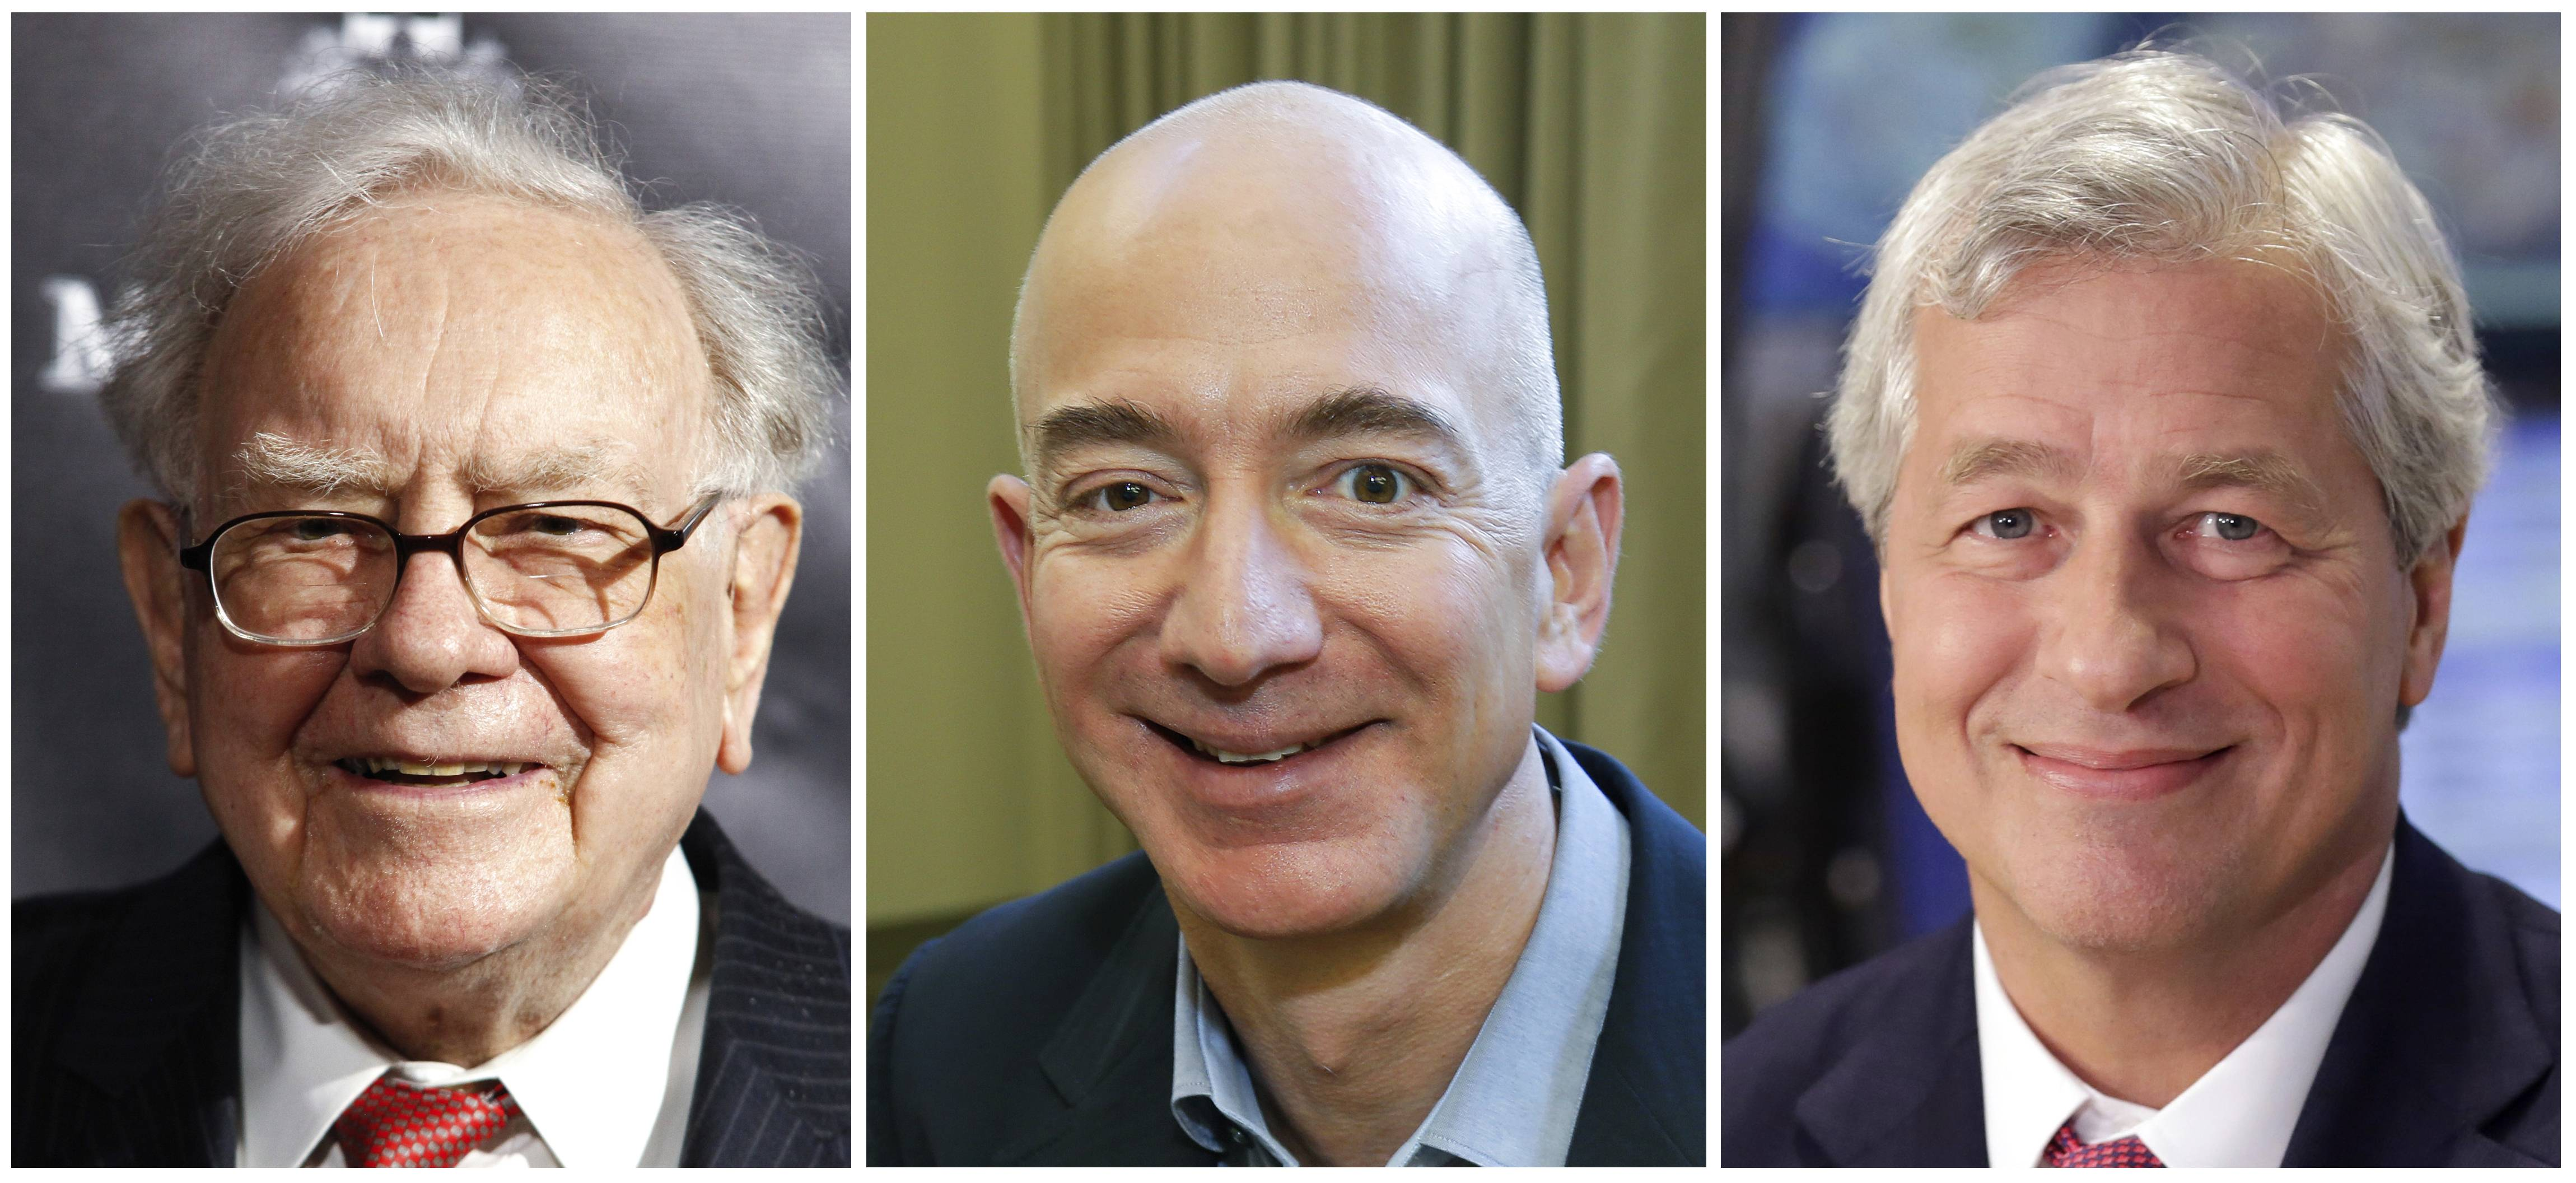 Warren Buffett, Jeff Bezos, and JPMorgan Chase Chairman and CEO Jamie Dimon. Buffett's Berkshire Hathaway, Amazon and the New York bank JPMorgan Chase are teaming up to create a health care company.